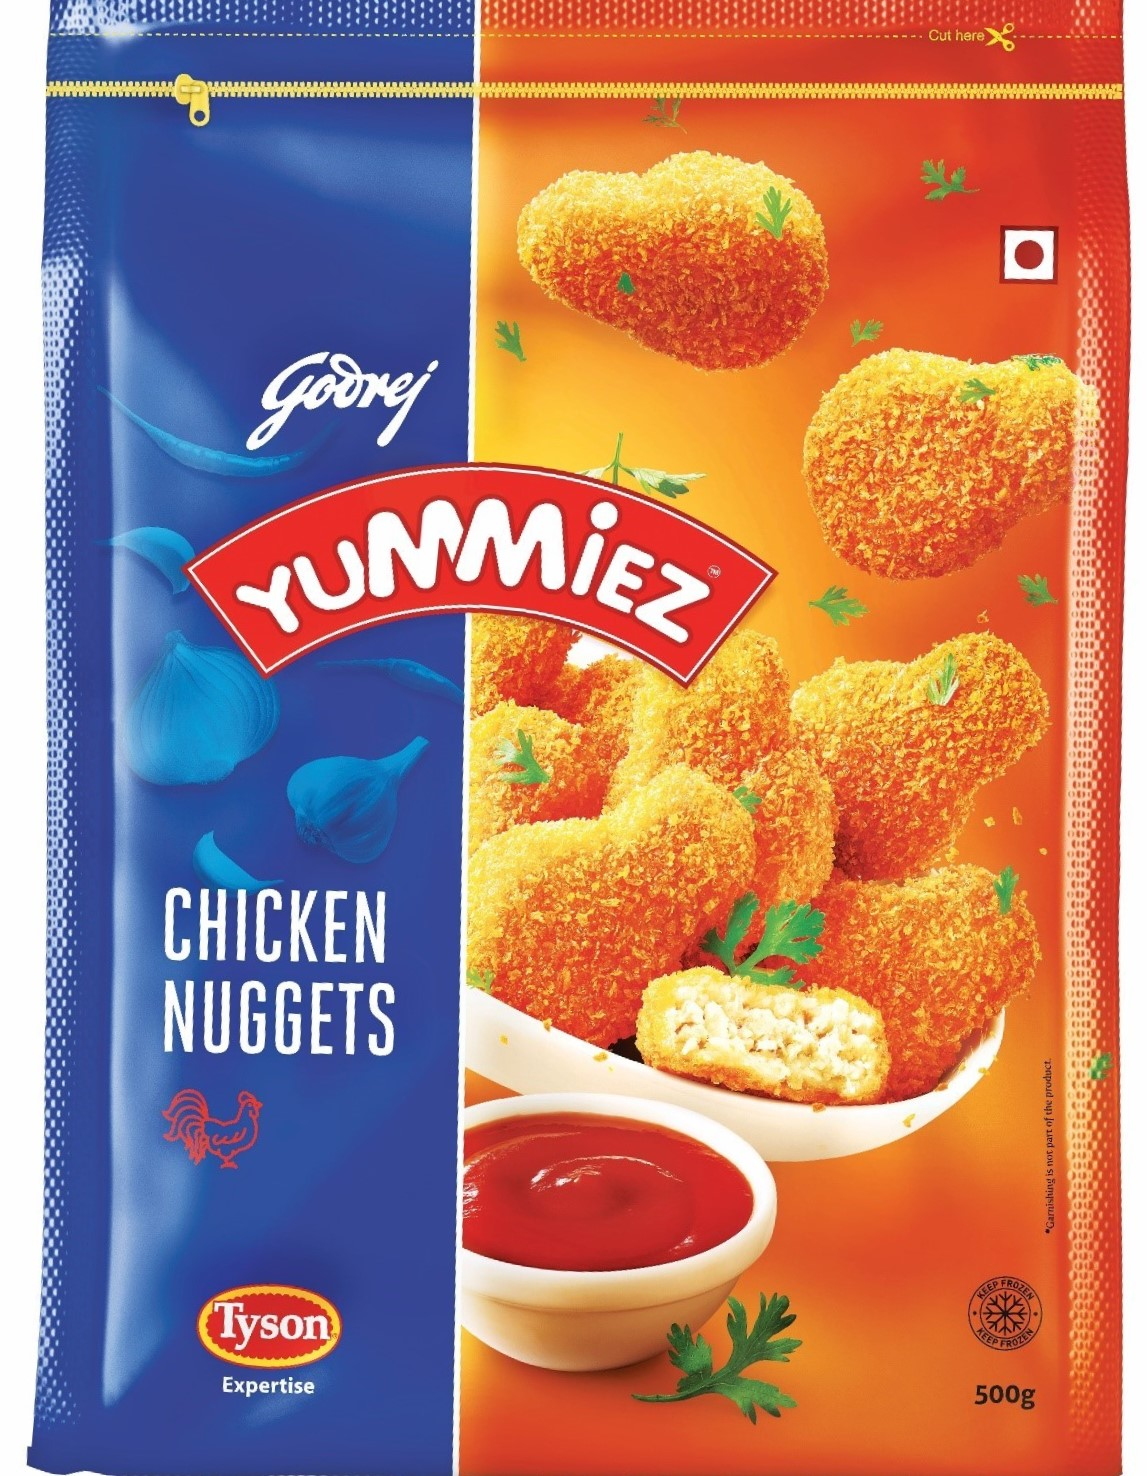 Yummiez Chicken Nuggets